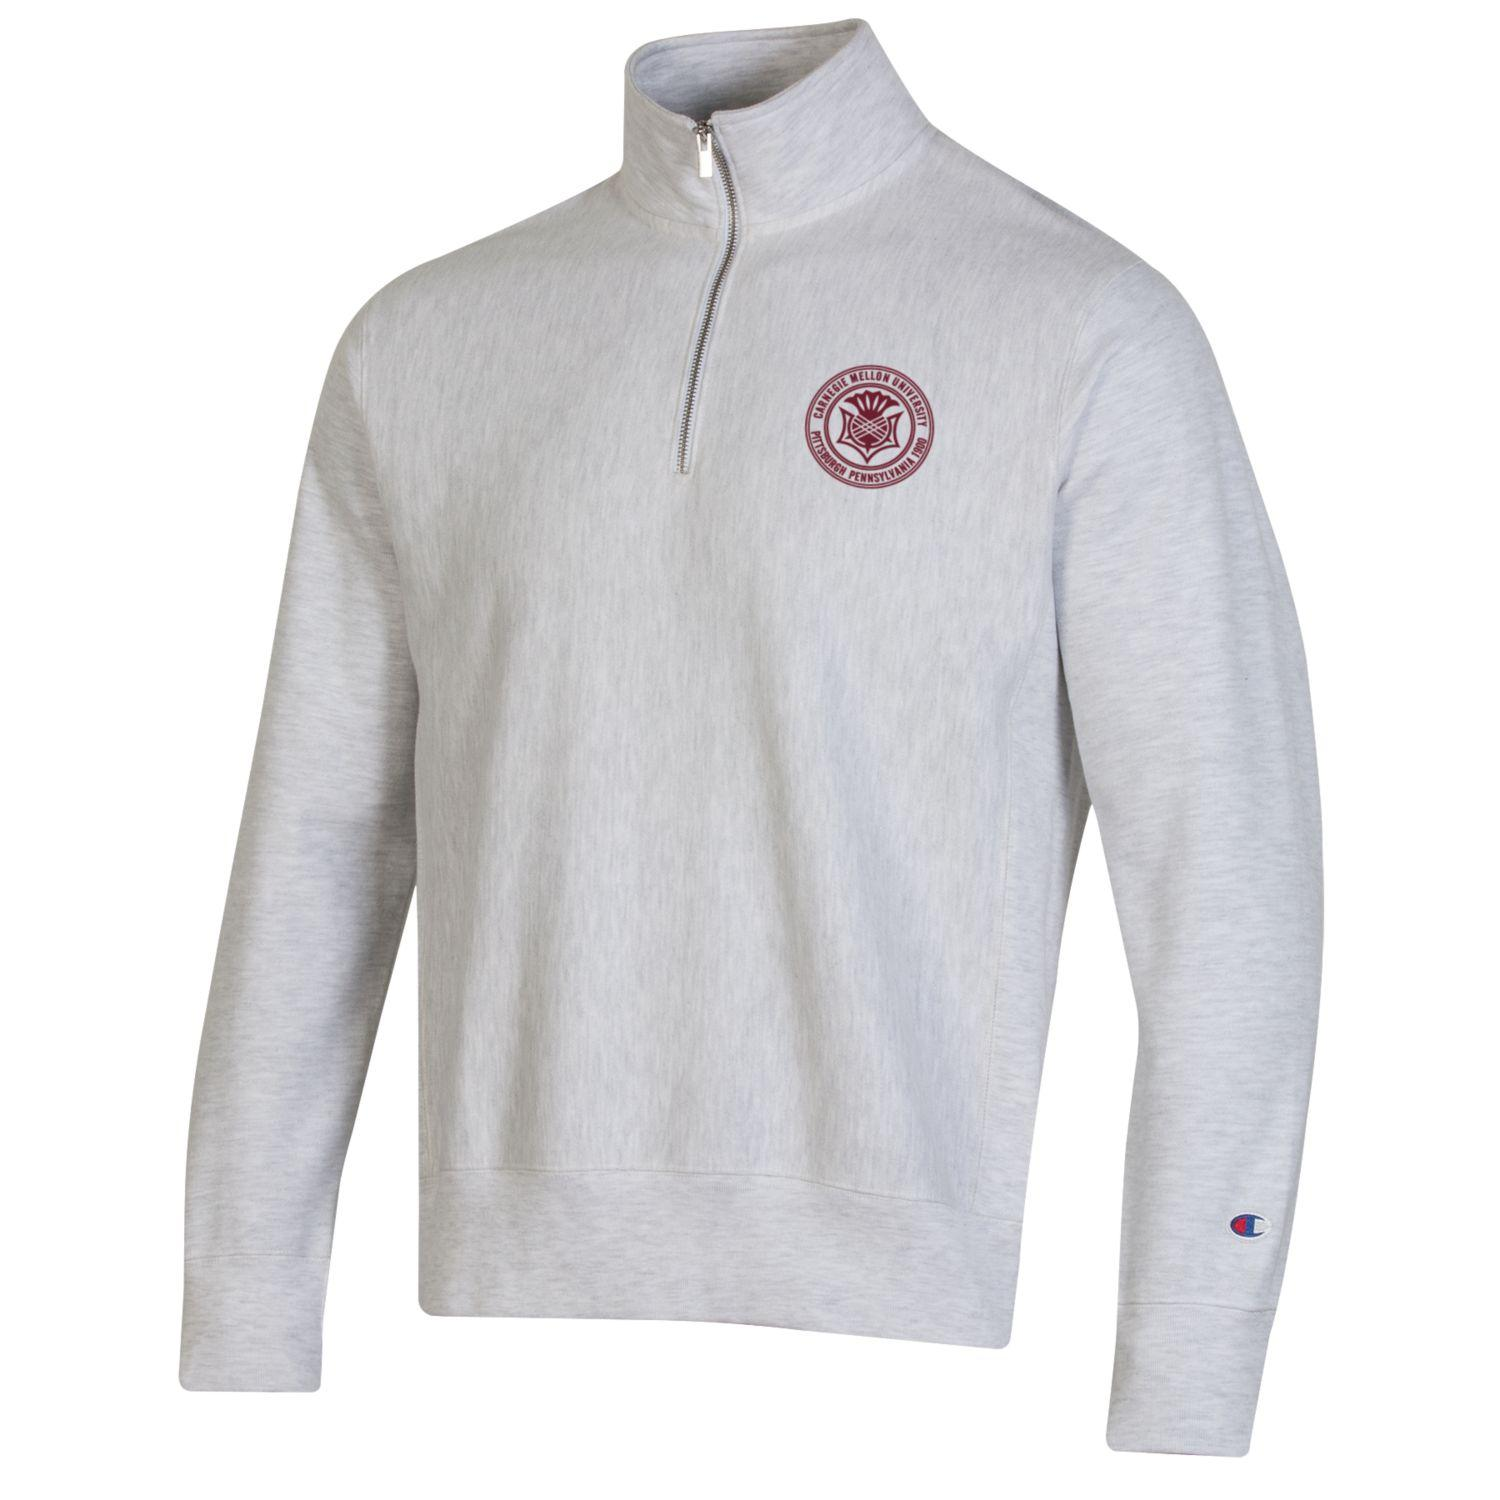 Image For <qz>Champion Reverseweave Seal 1/4 Zip: Oxford